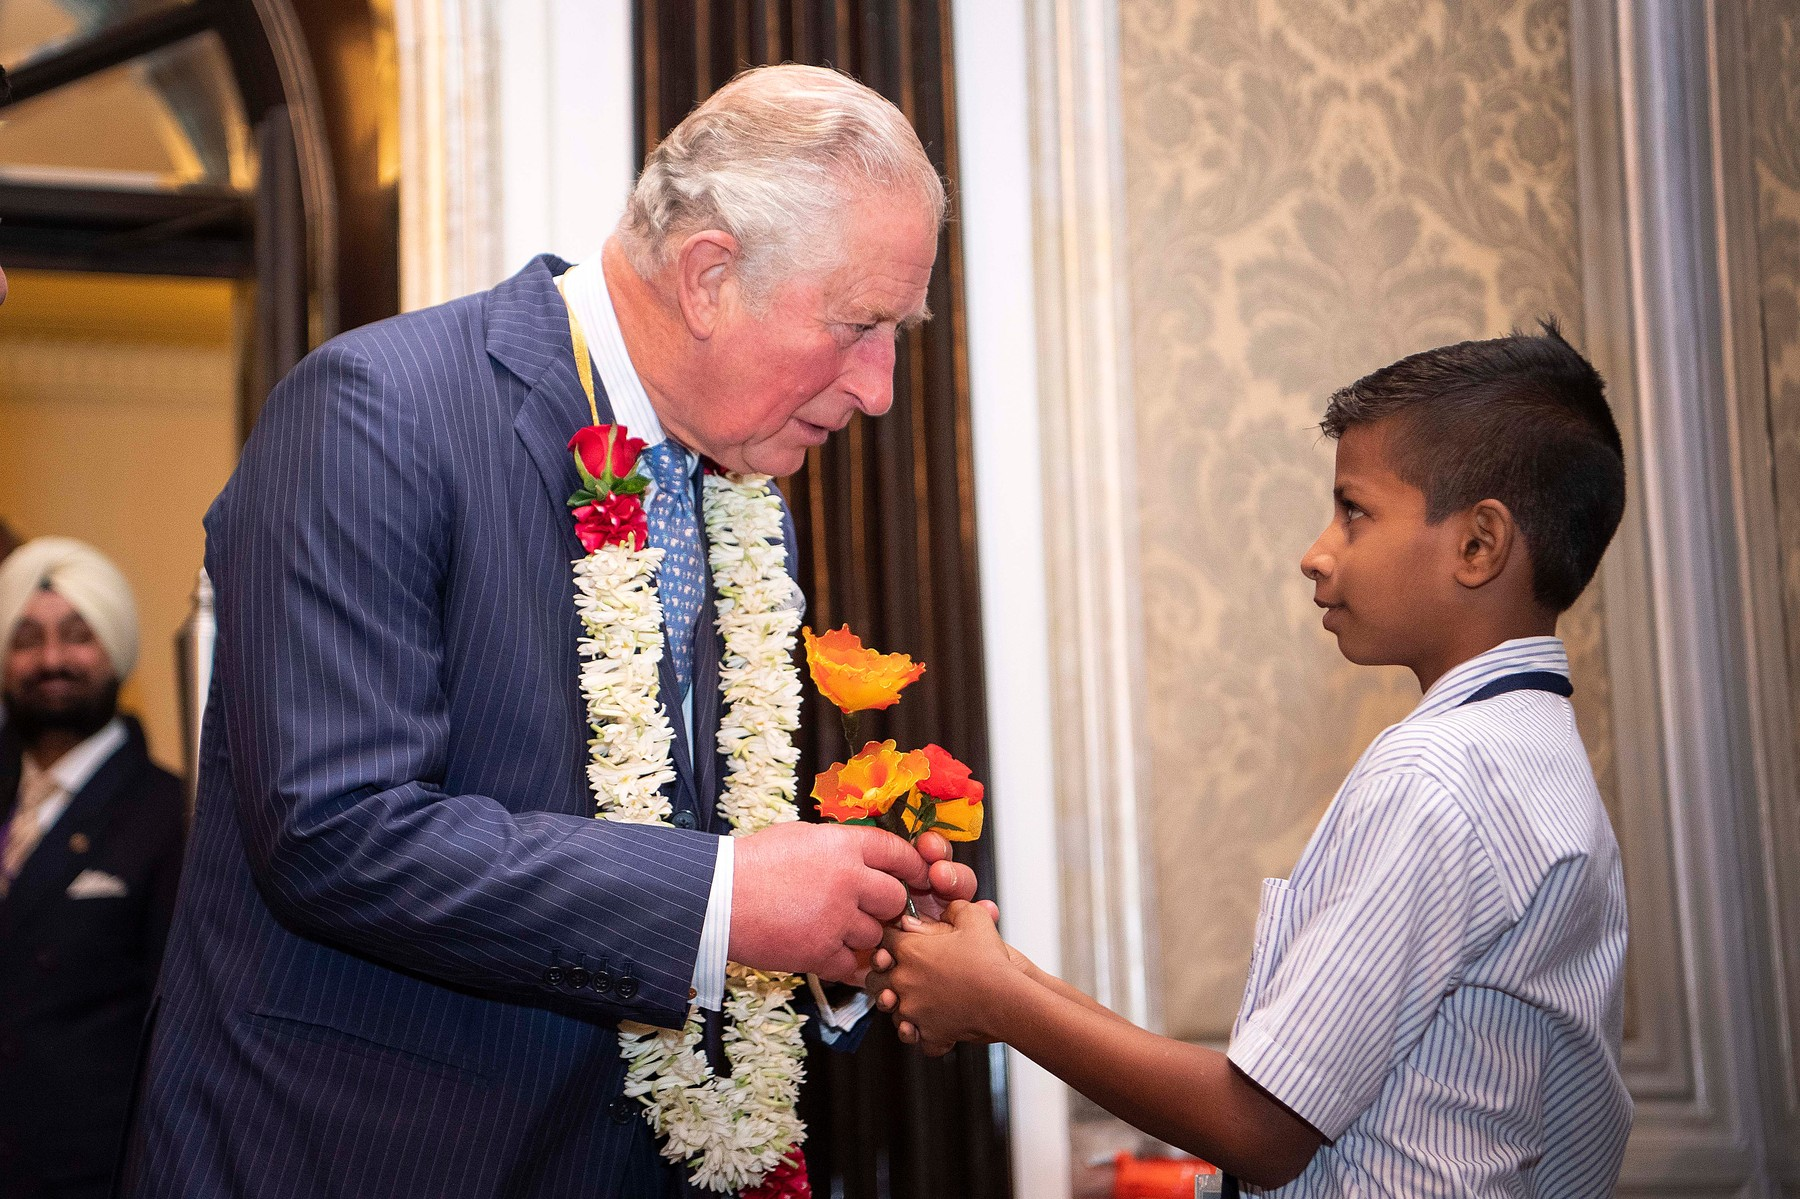 The Prince of Wales receives a flower and garland from a school boy during a British Asian Trust reception in Mumbai, on day two of the royal visit to India., Image: 482790909, License: Rights-managed, Restrictions: , Model Release: no, Credit line: Victoria Jones / PA Images / Profimedia